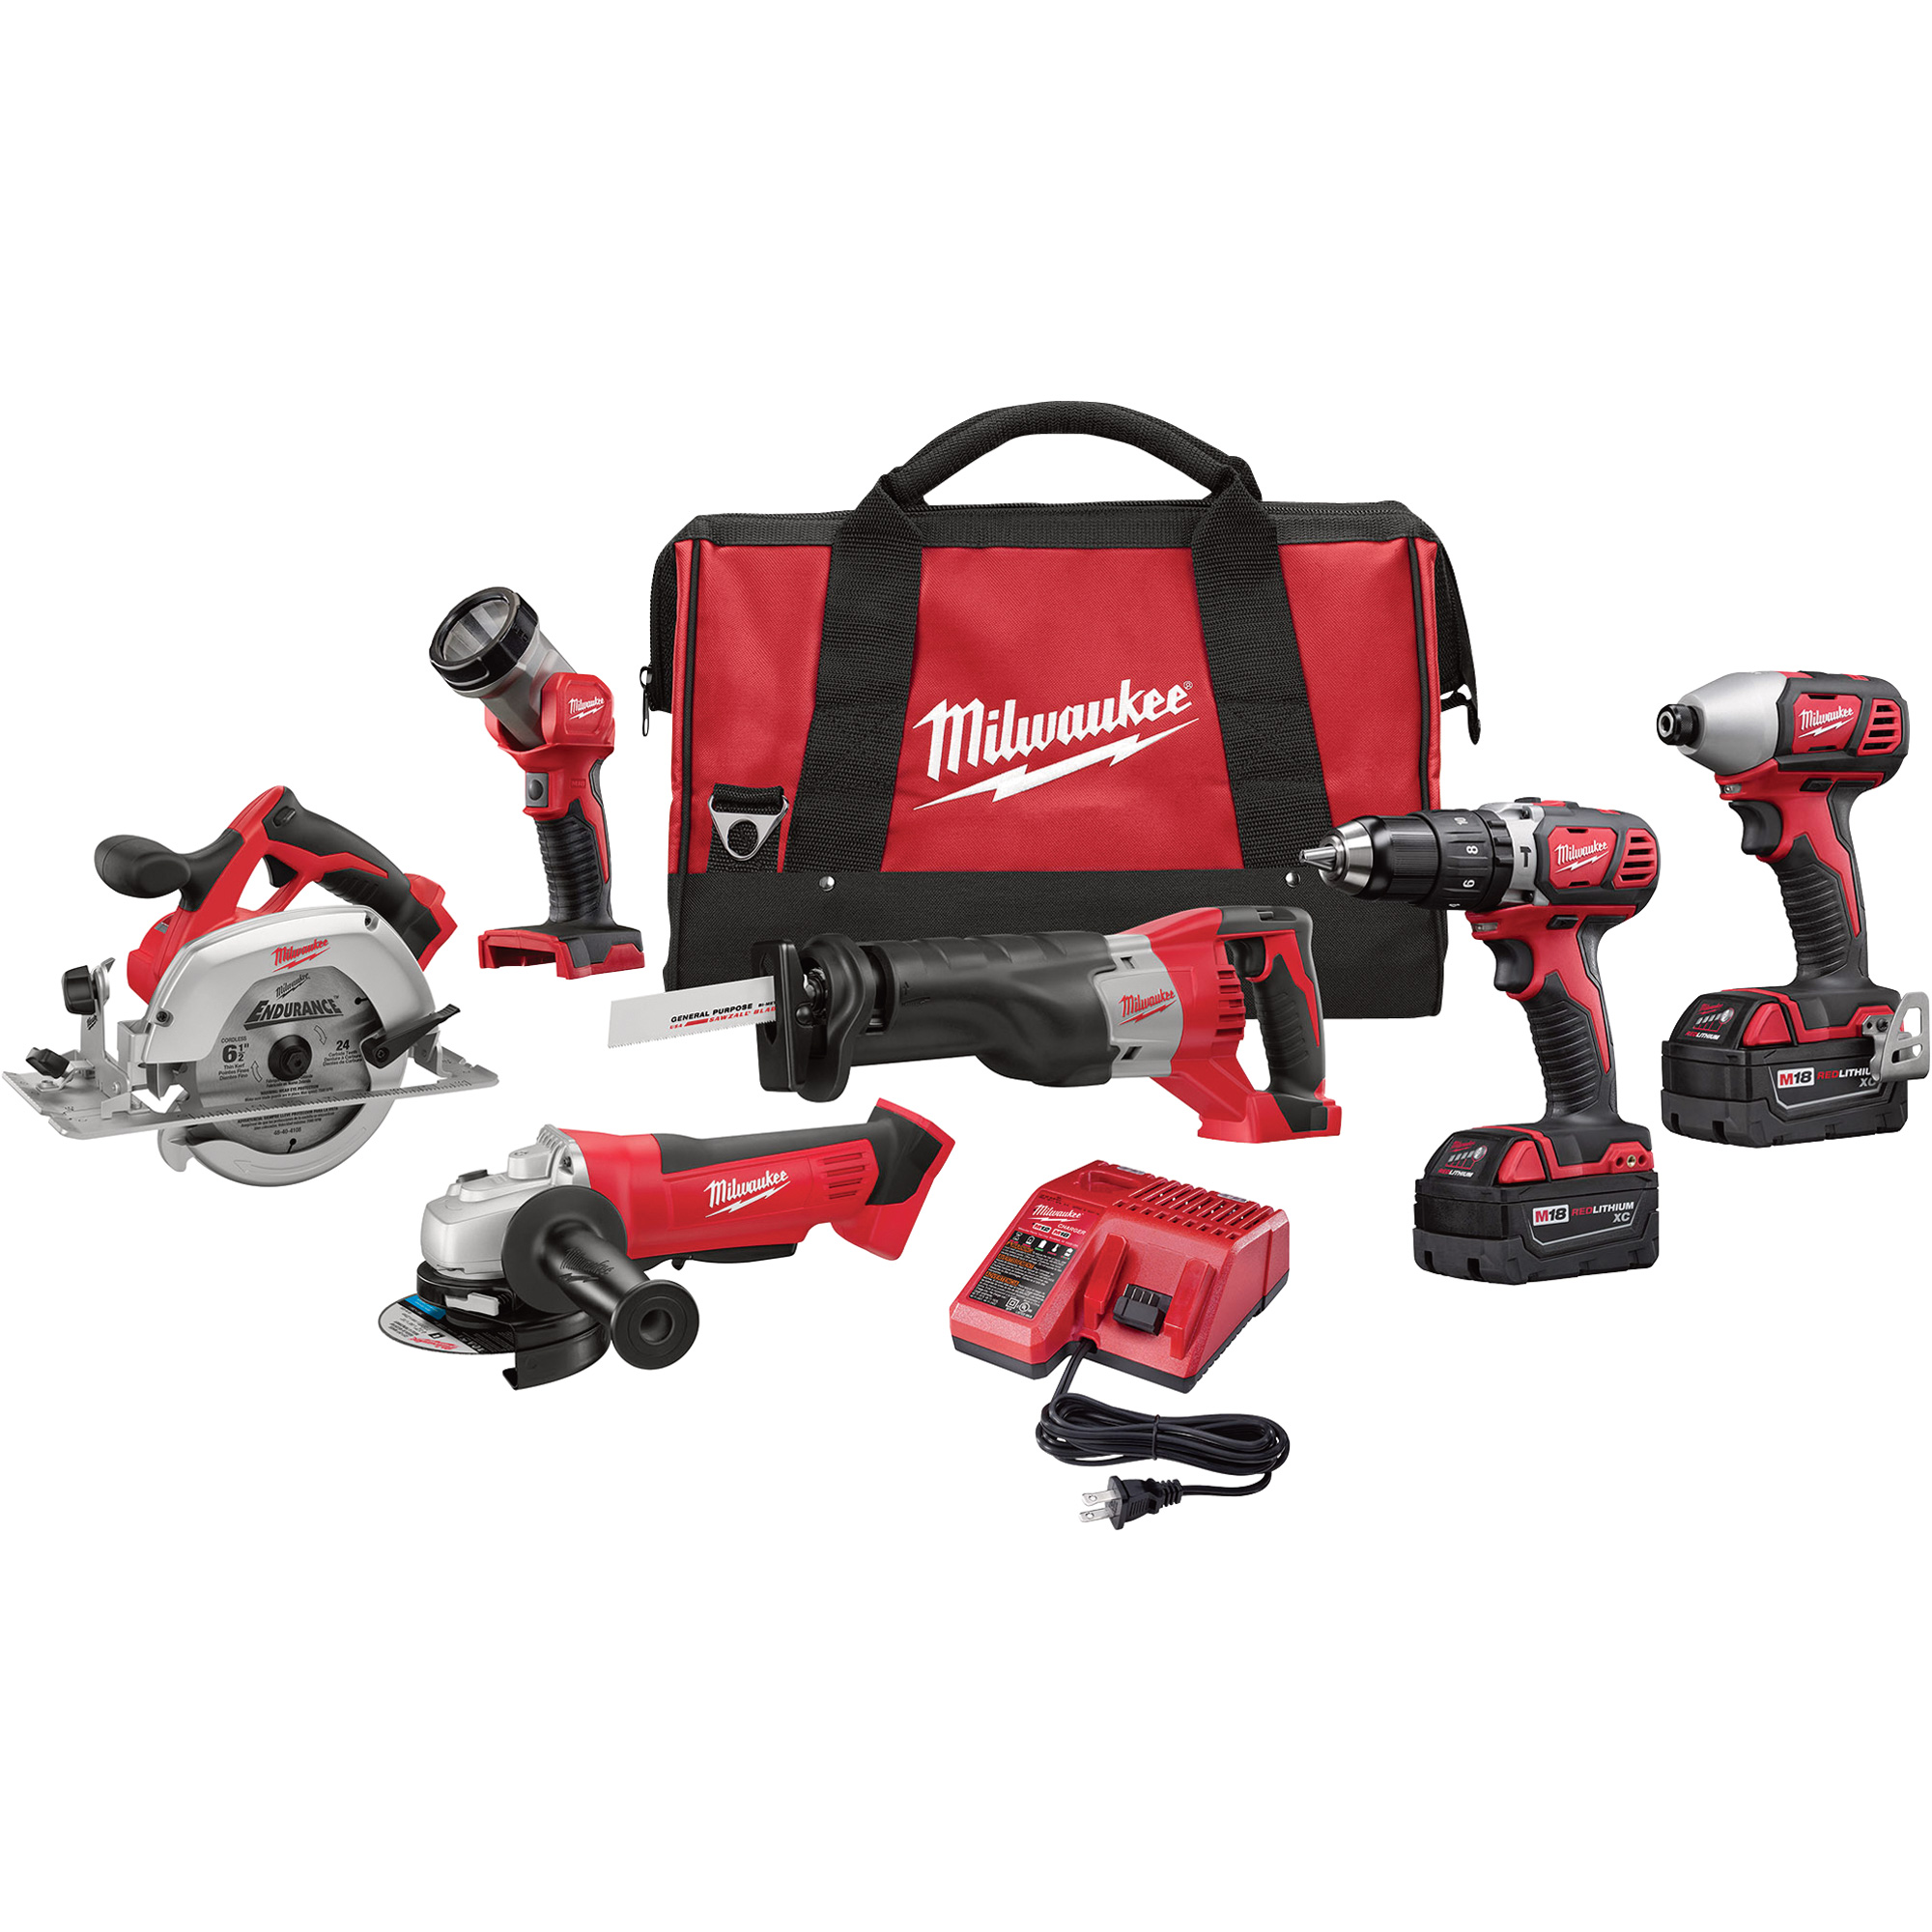 MILWAUKEE GEAR & TOOLS